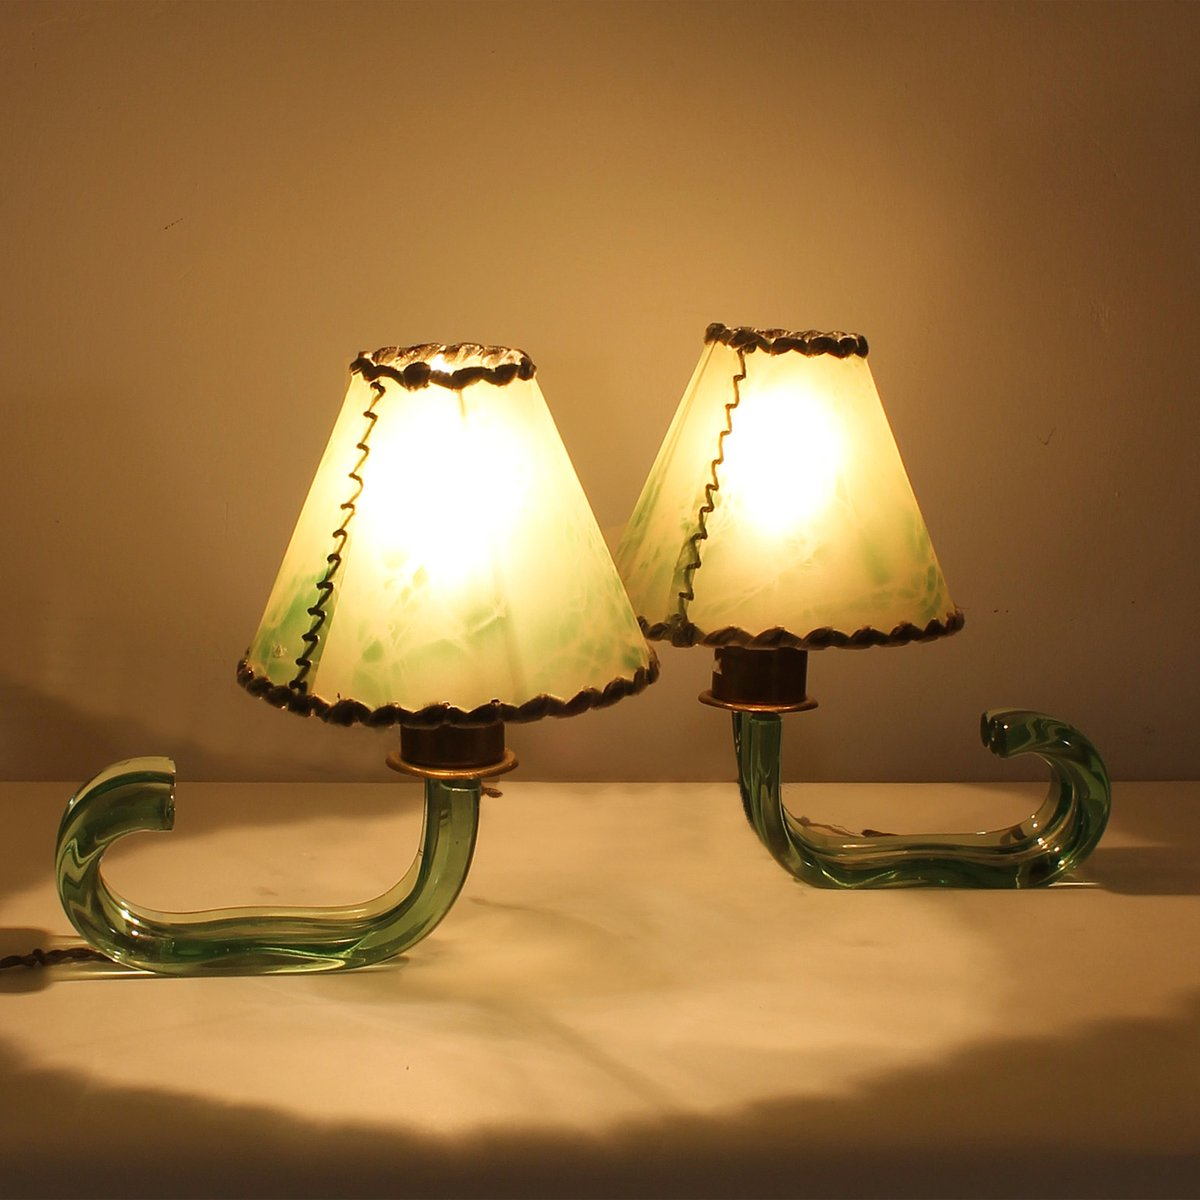 italienische messing glas mini lampen von seguso 1940er. Black Bedroom Furniture Sets. Home Design Ideas